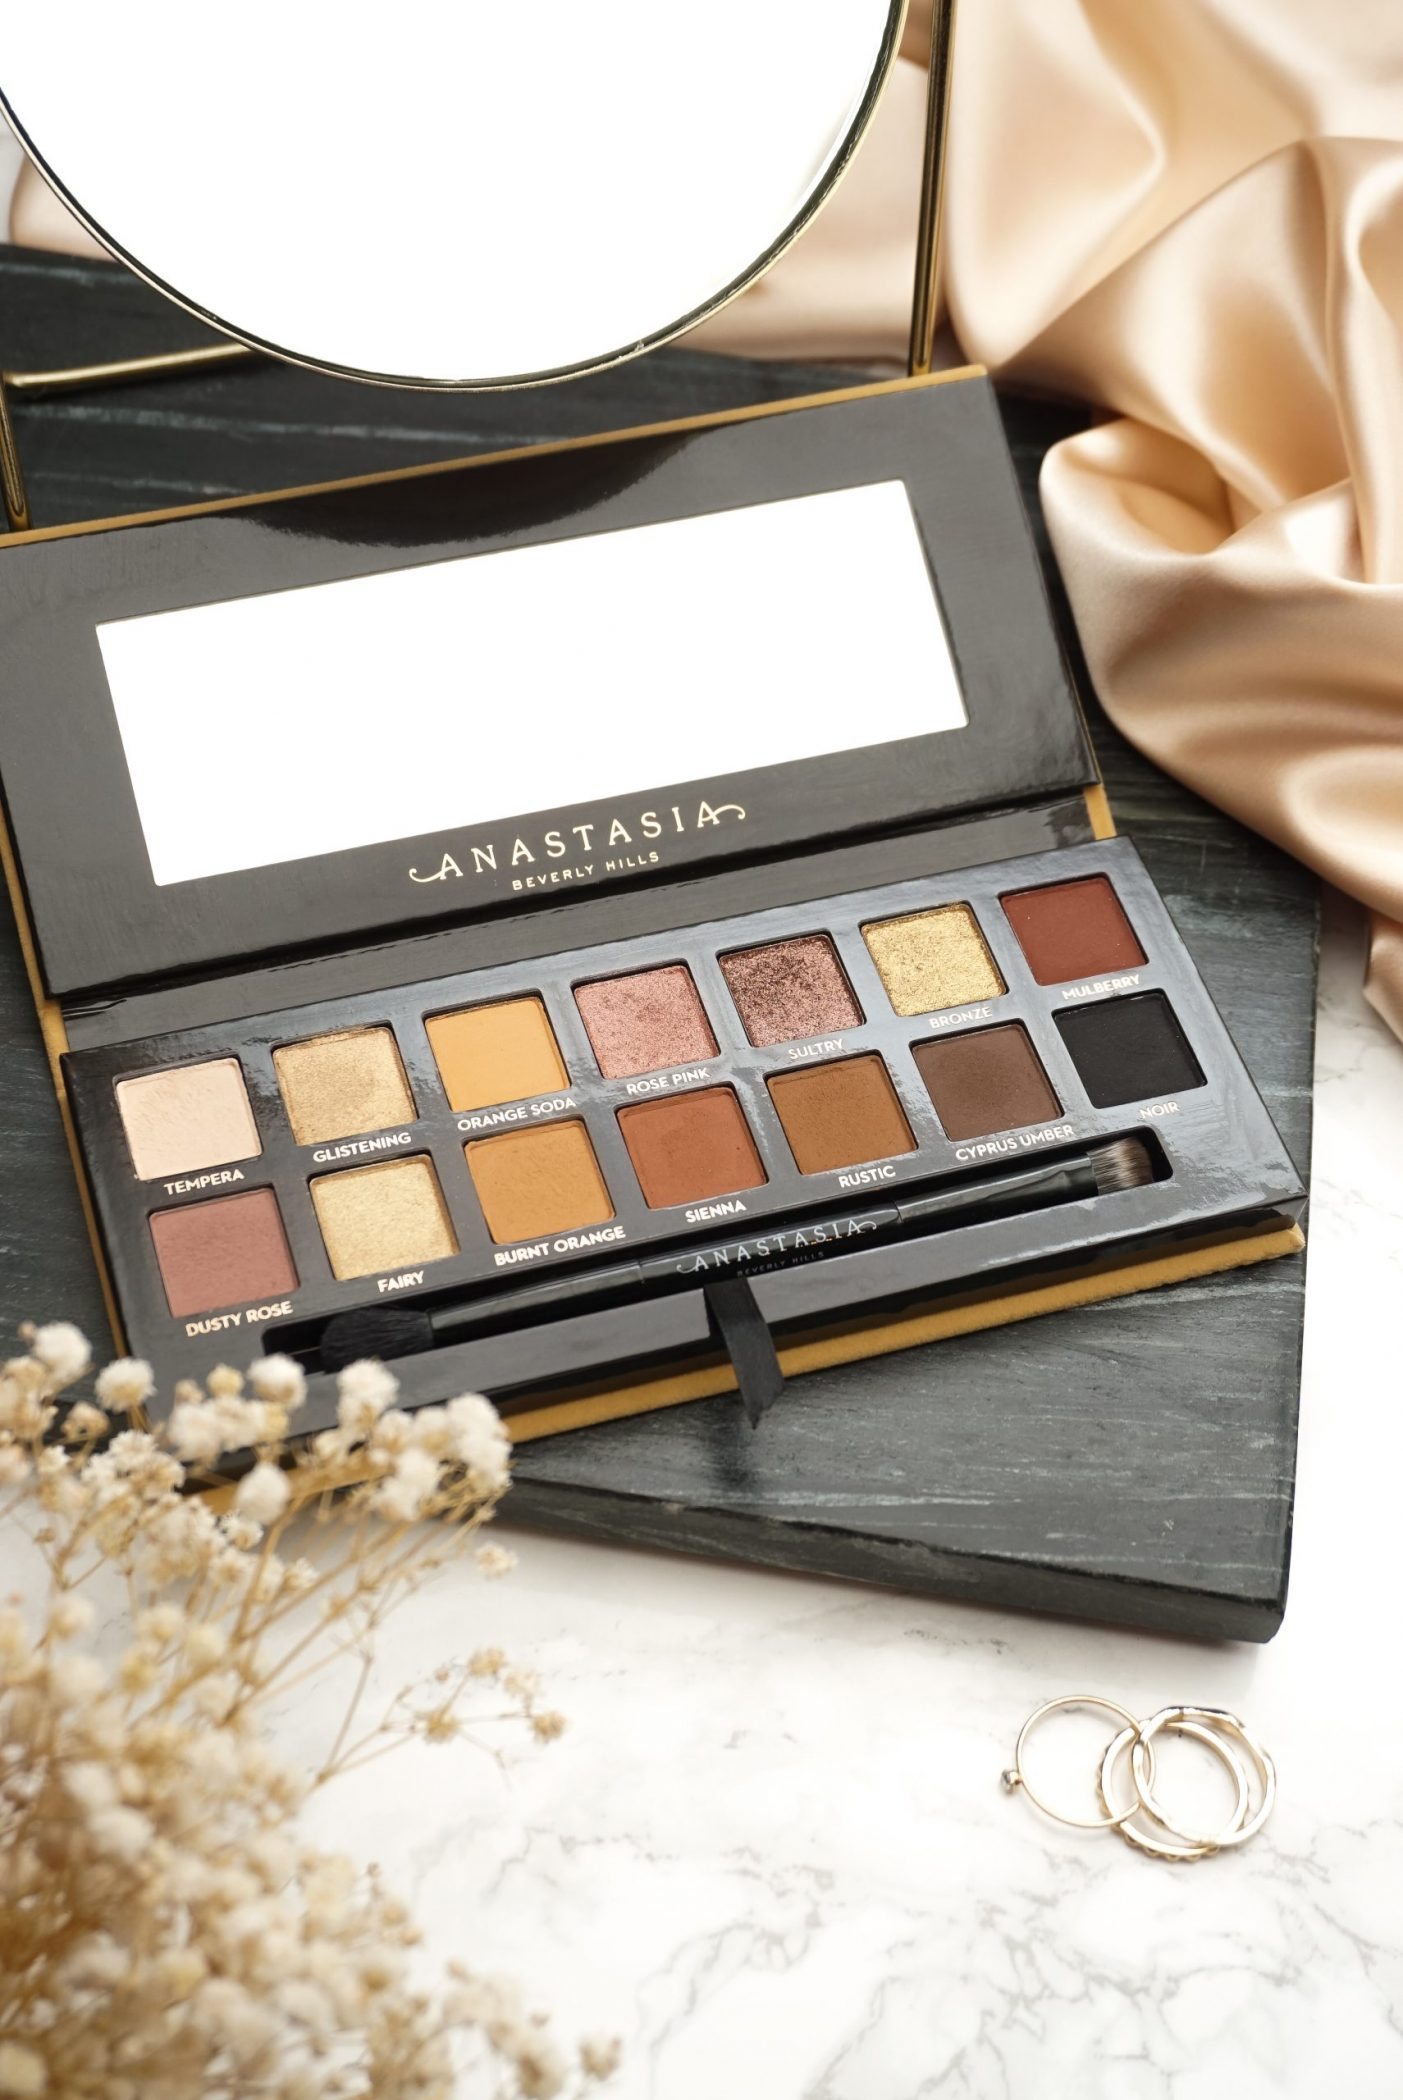 Luxurious Anastasia Beverly Hills Soft Glam Palette Review